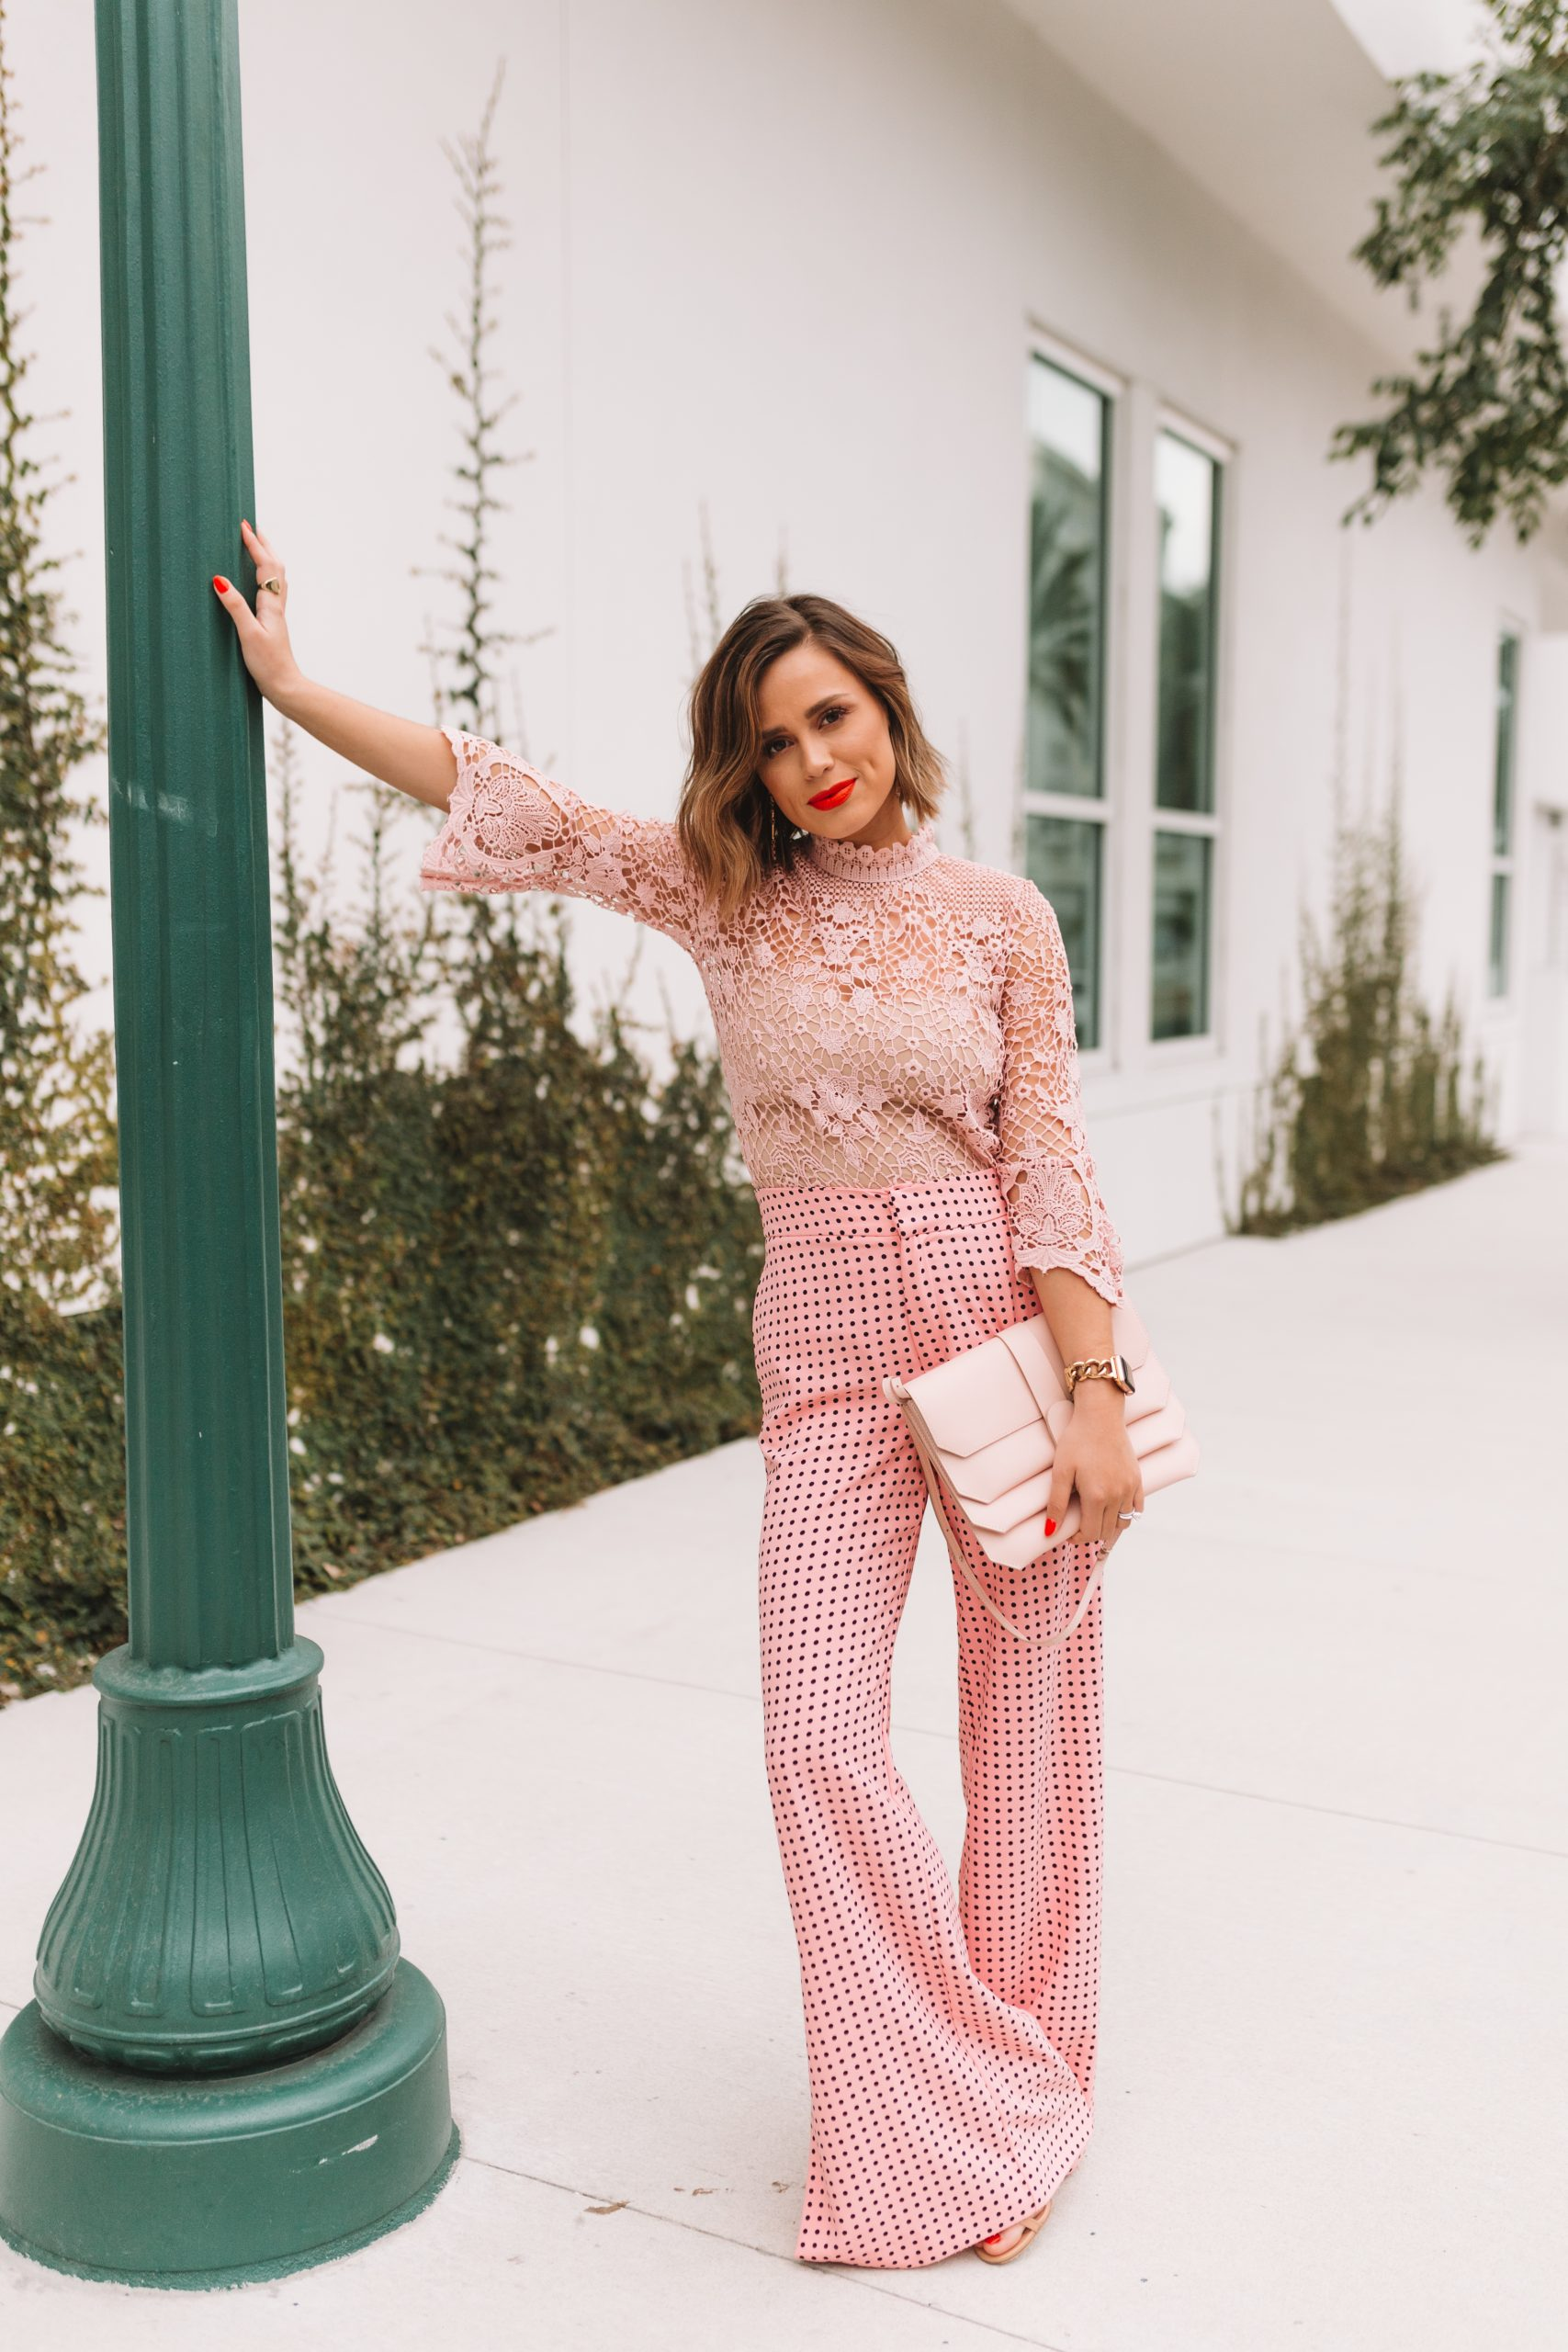 Houston lifestyle blogger Elly Brown shares 10 Ways To Practice Self Love not just this Valentine's Day, but all year round!